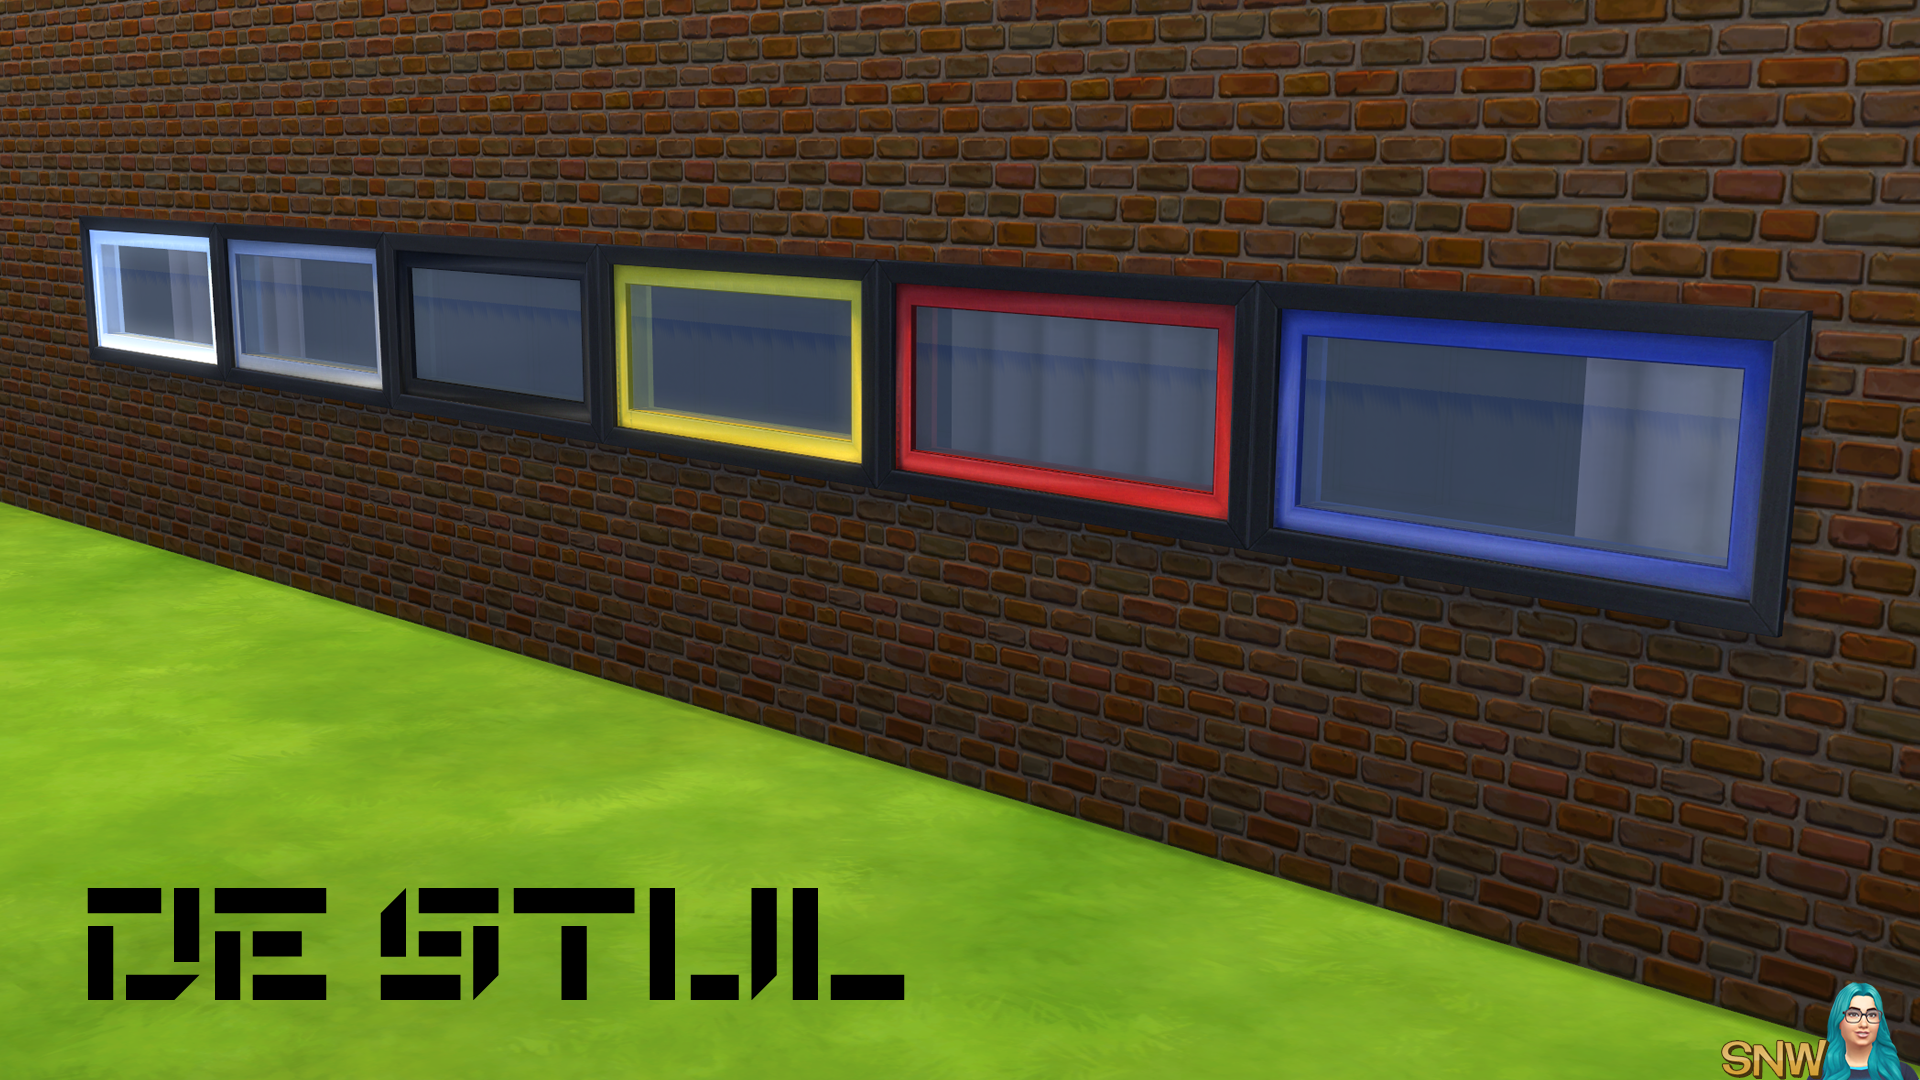 De Stijl Wide Window 8 Snw Simsnetwork Com